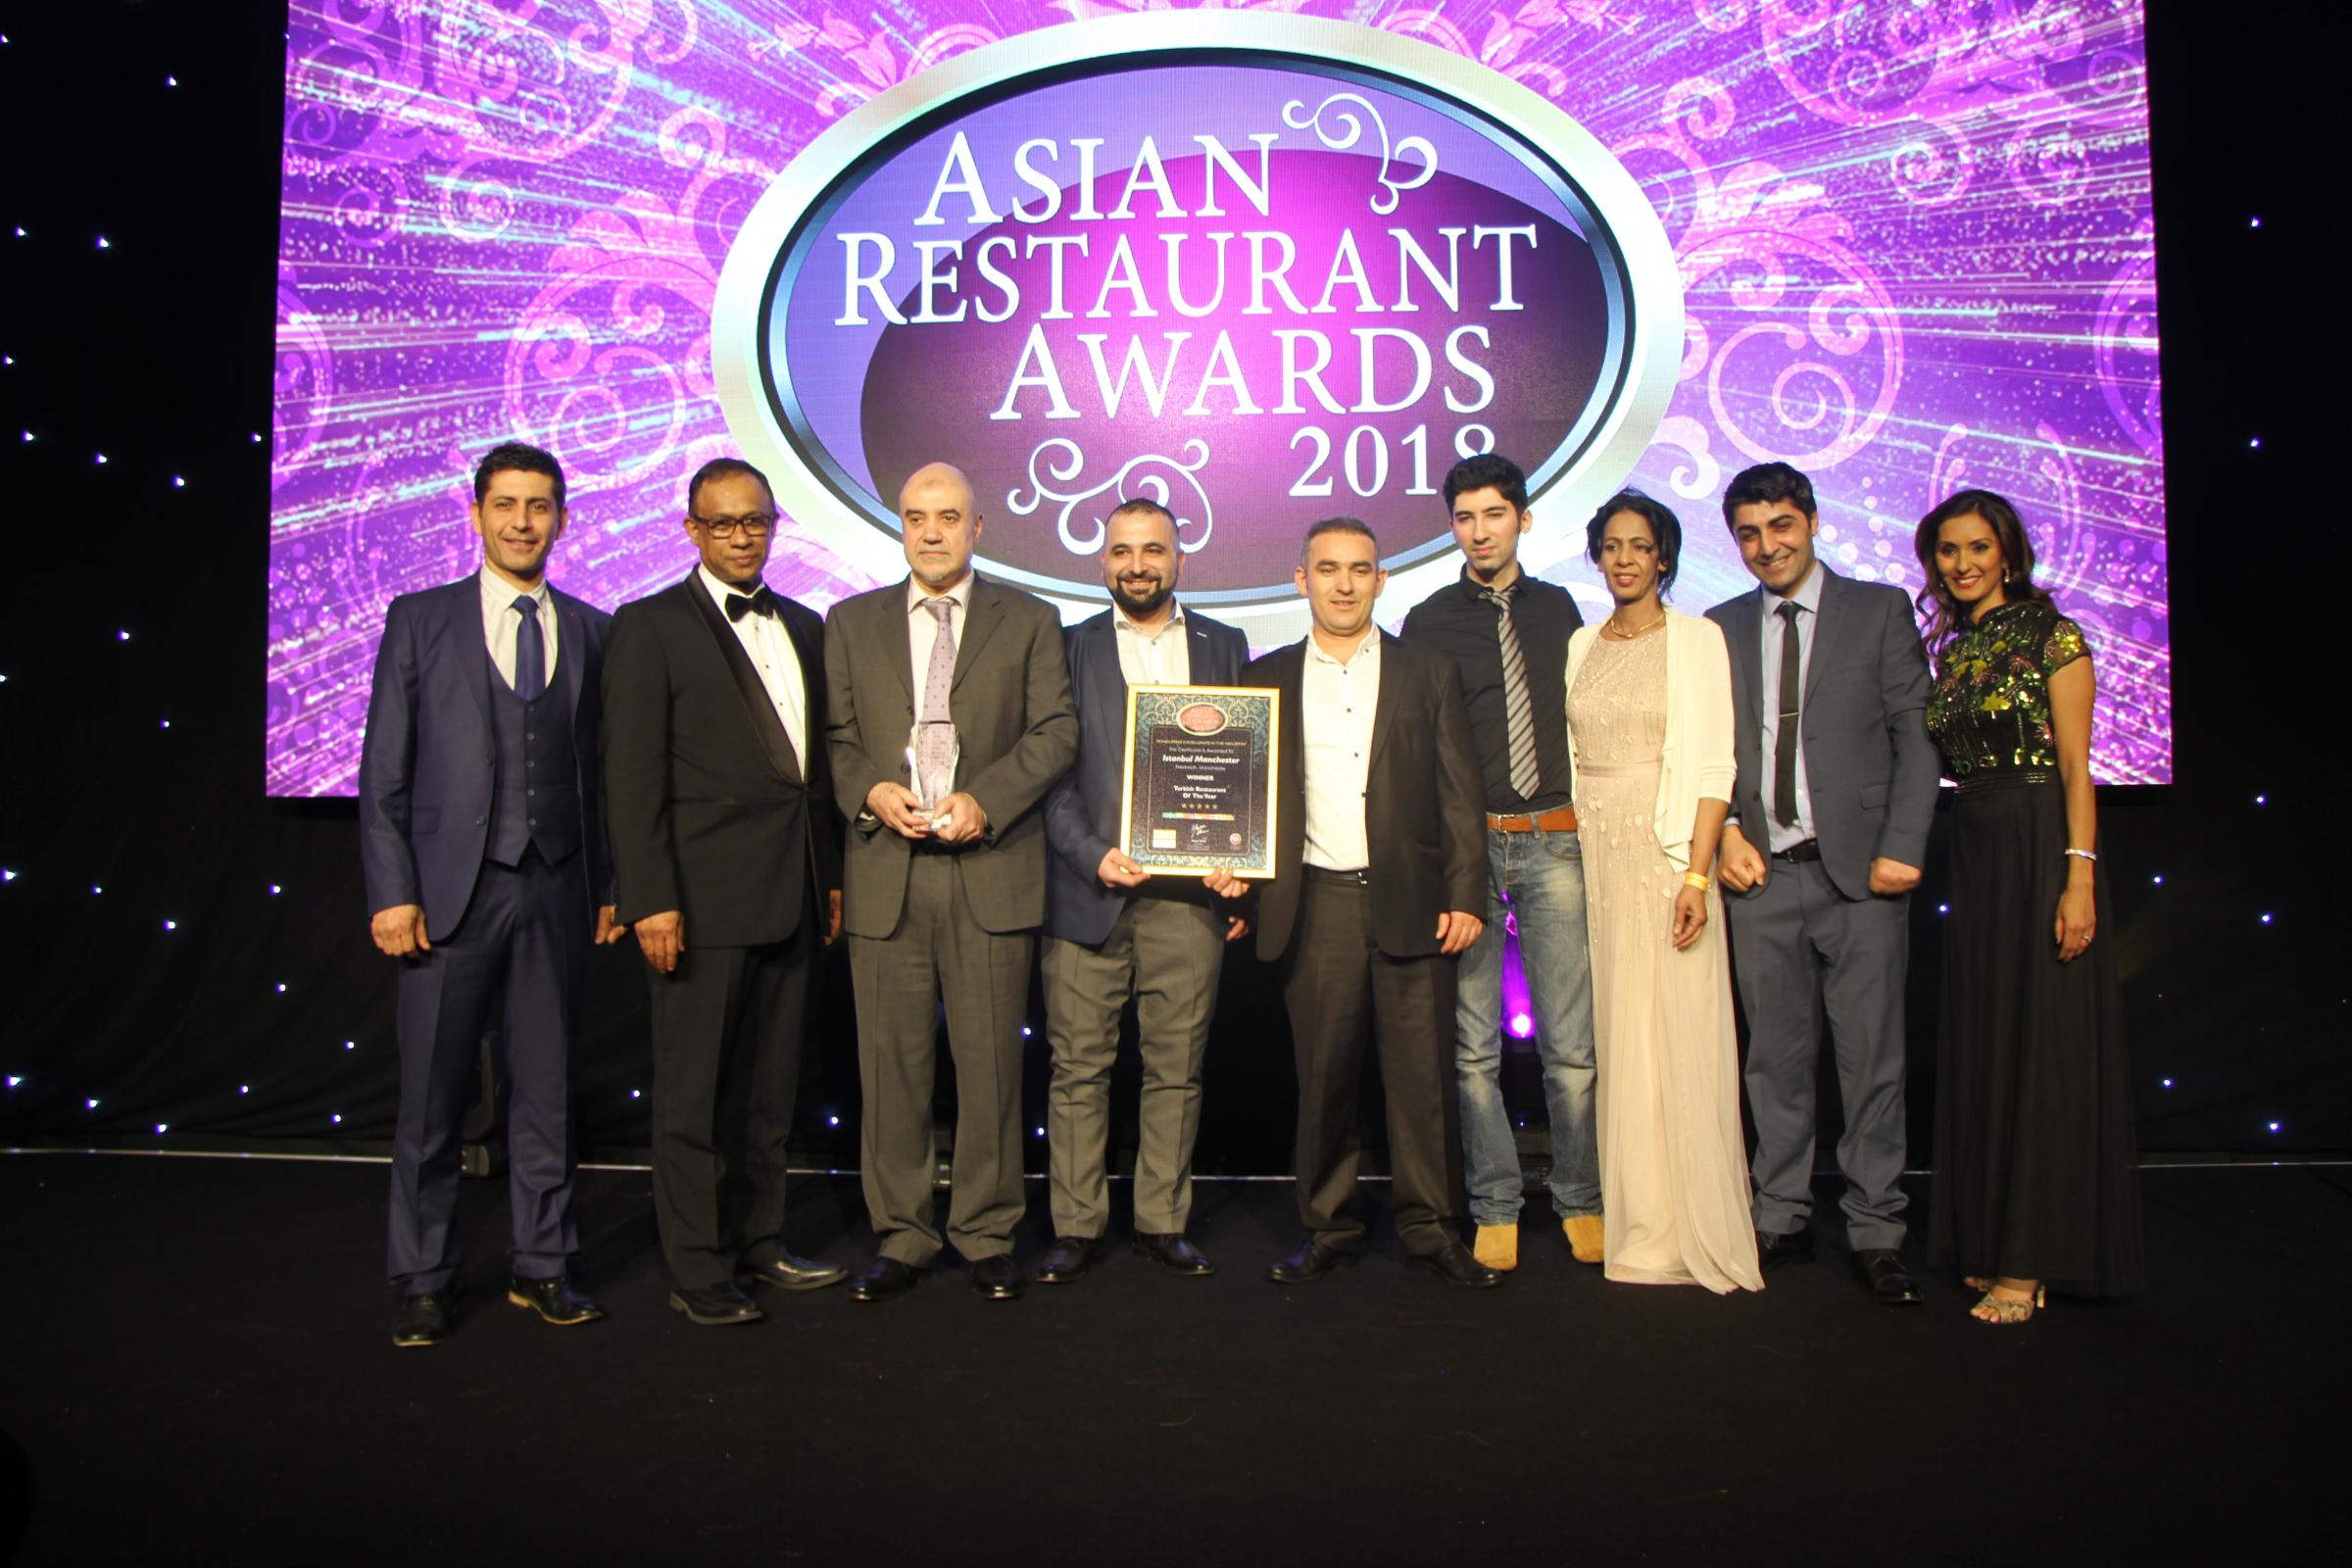 The Istanbul Grill team win Best Turkish at the Asian Restaurant Awards 2018